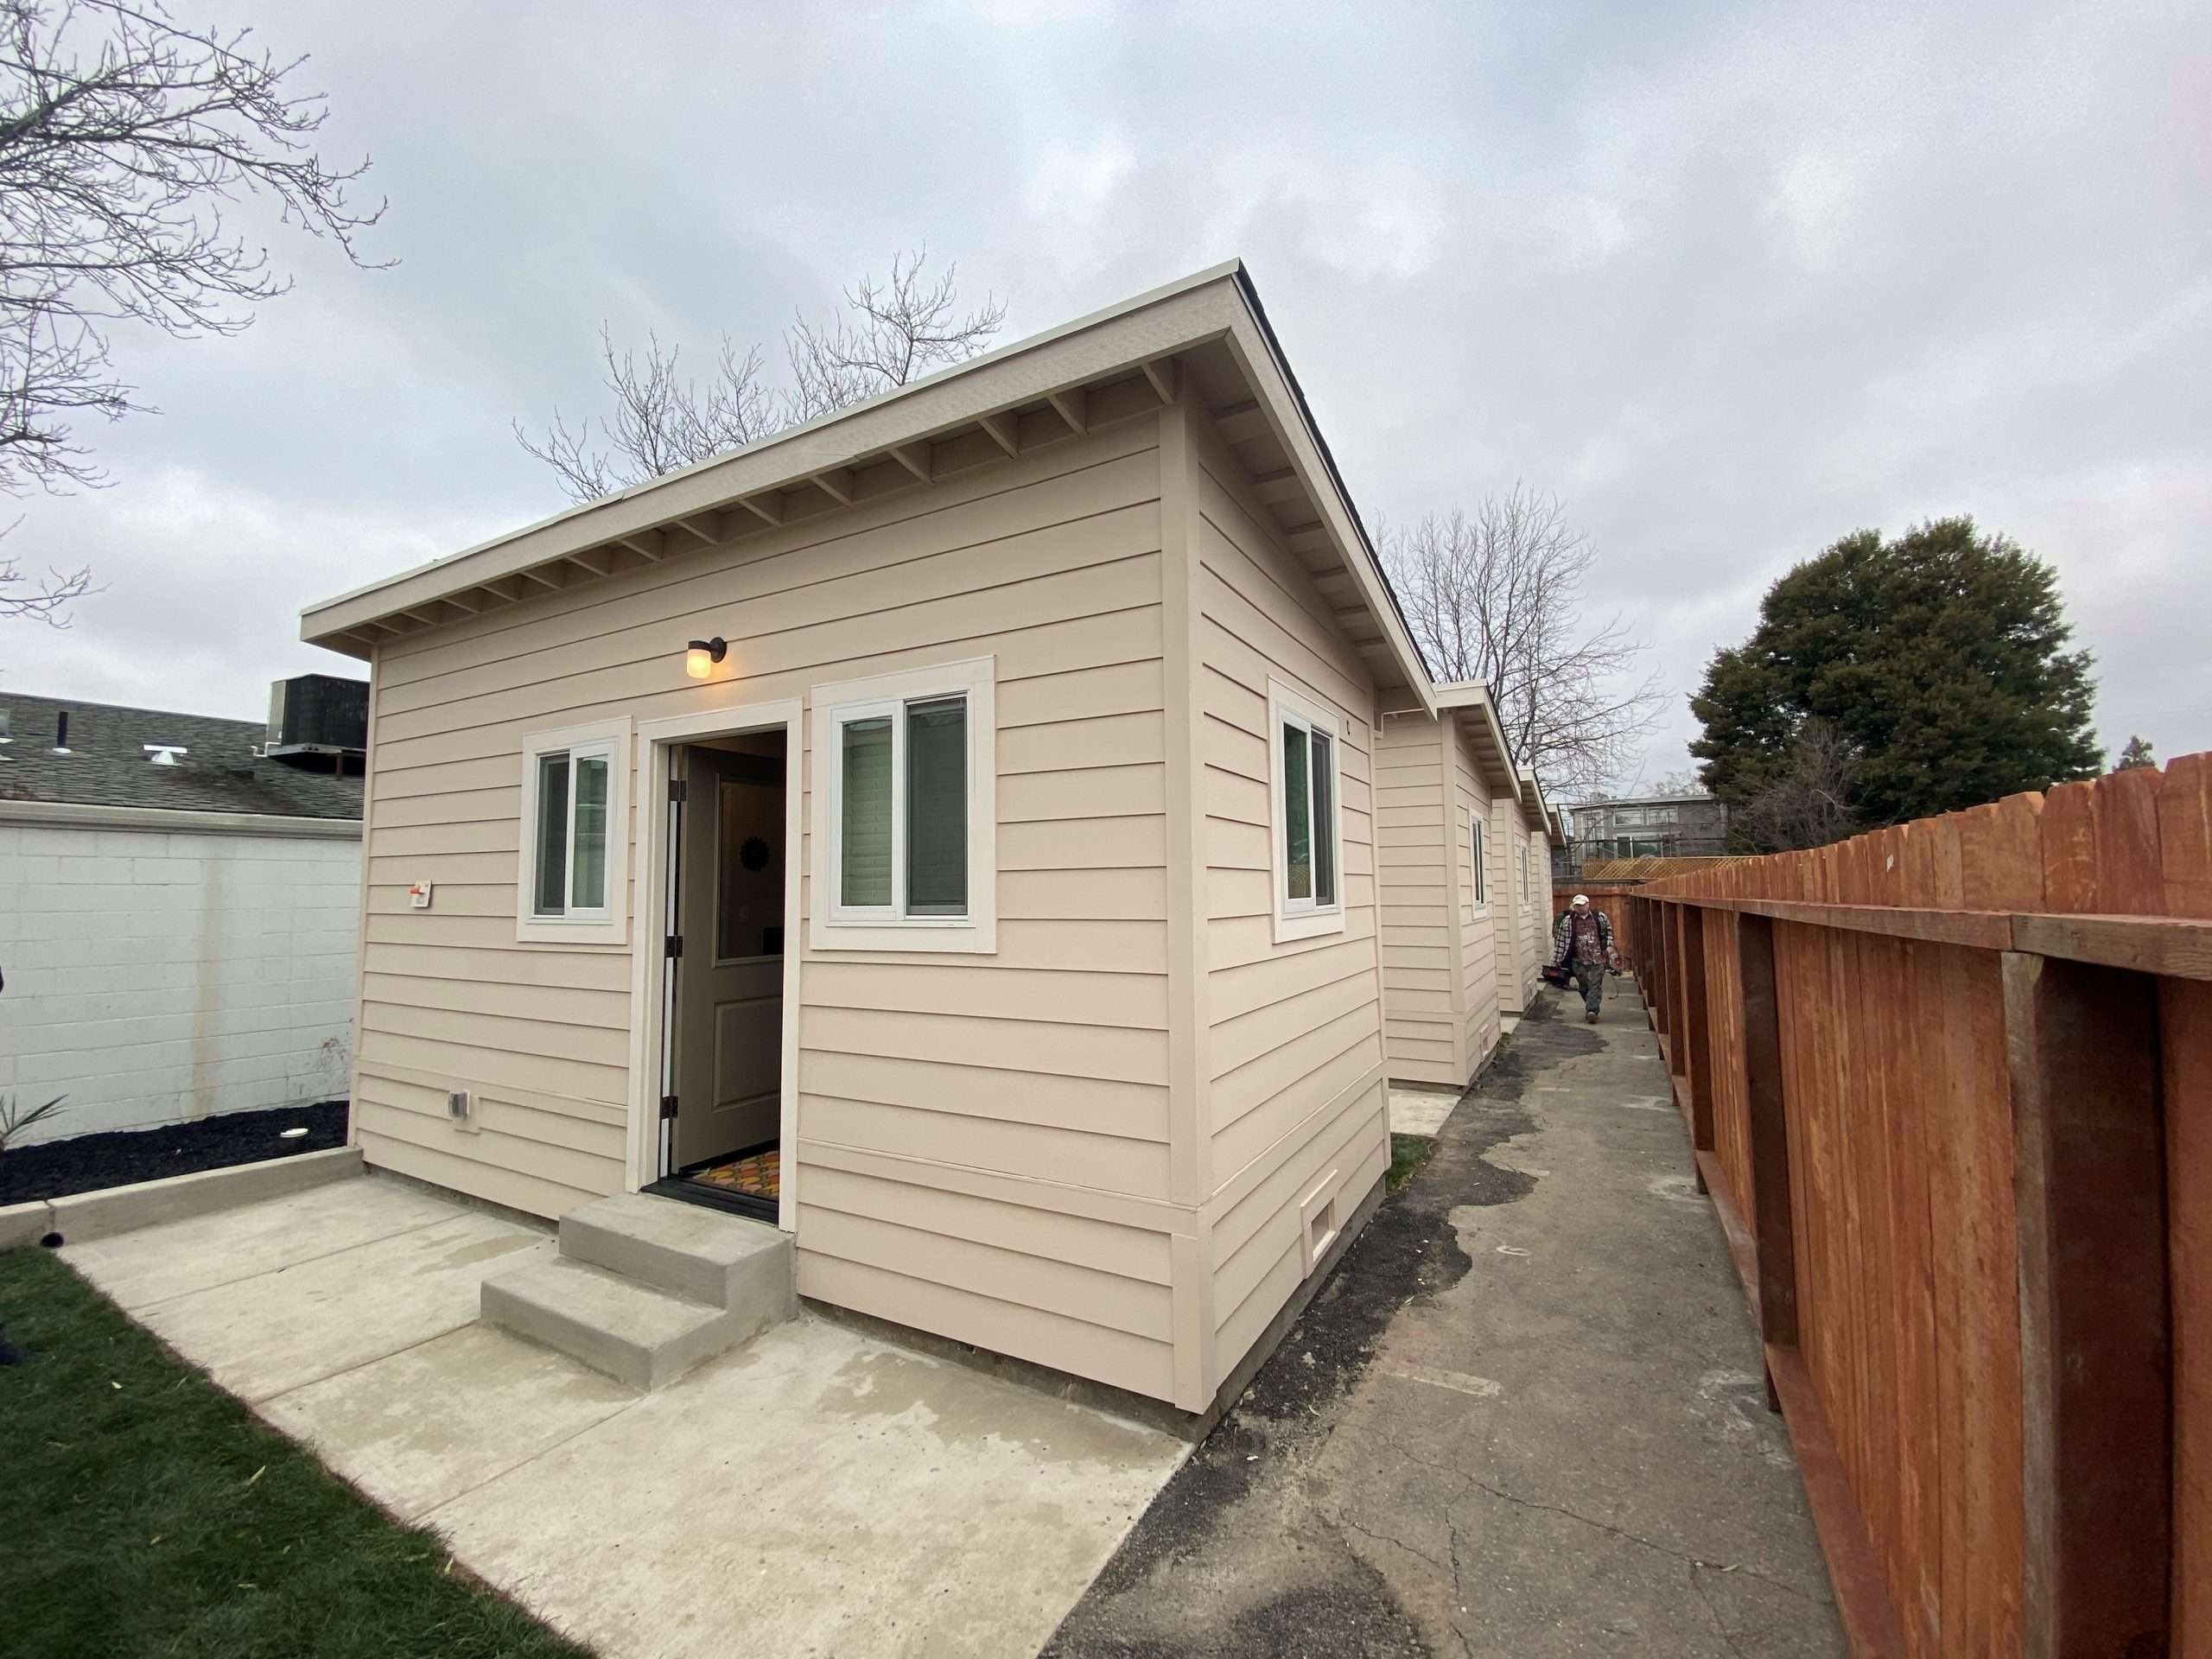 Northern California Builds Tiny Homes with Big Hopes